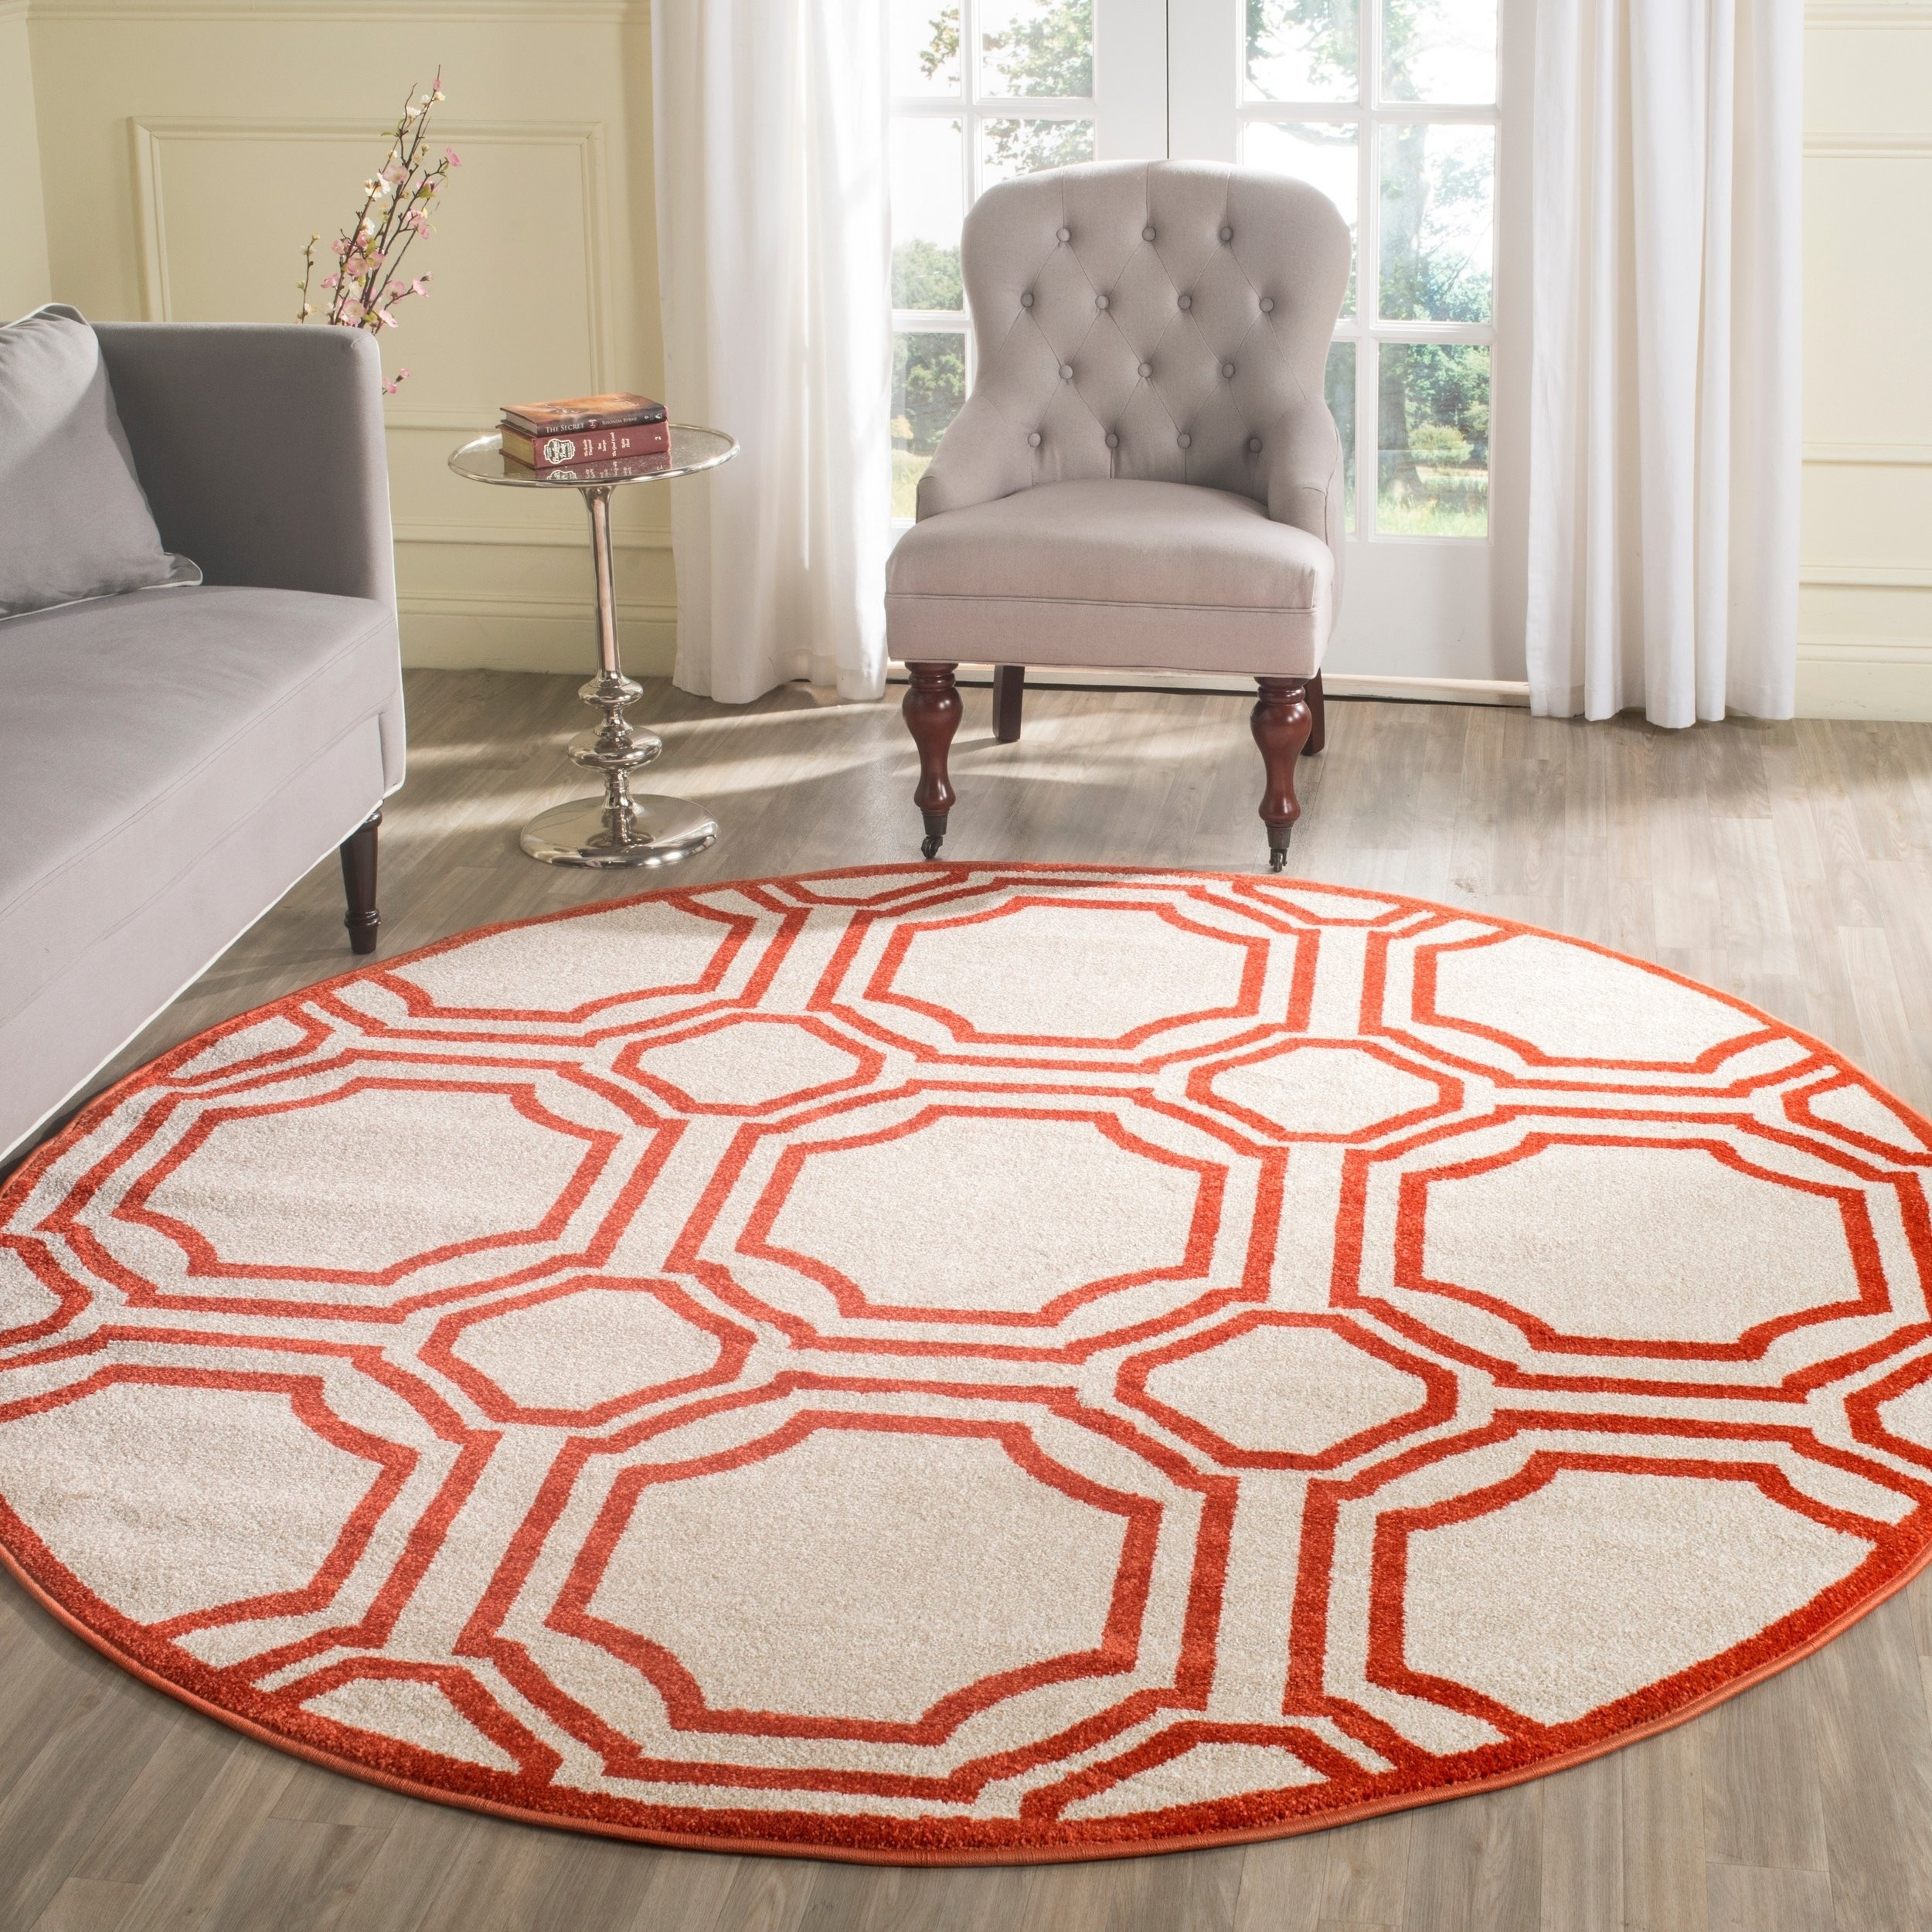 Rug Types for Hardwood Floors Of Shop Safavieh Amherst Indoor Outdoor Ivory orange Rug 7 Round Intended for Shop Safavieh Amherst Indoor Outdoor Ivory orange Rug 7 Round On Sale Free Shipping today Overstock Com 8891573